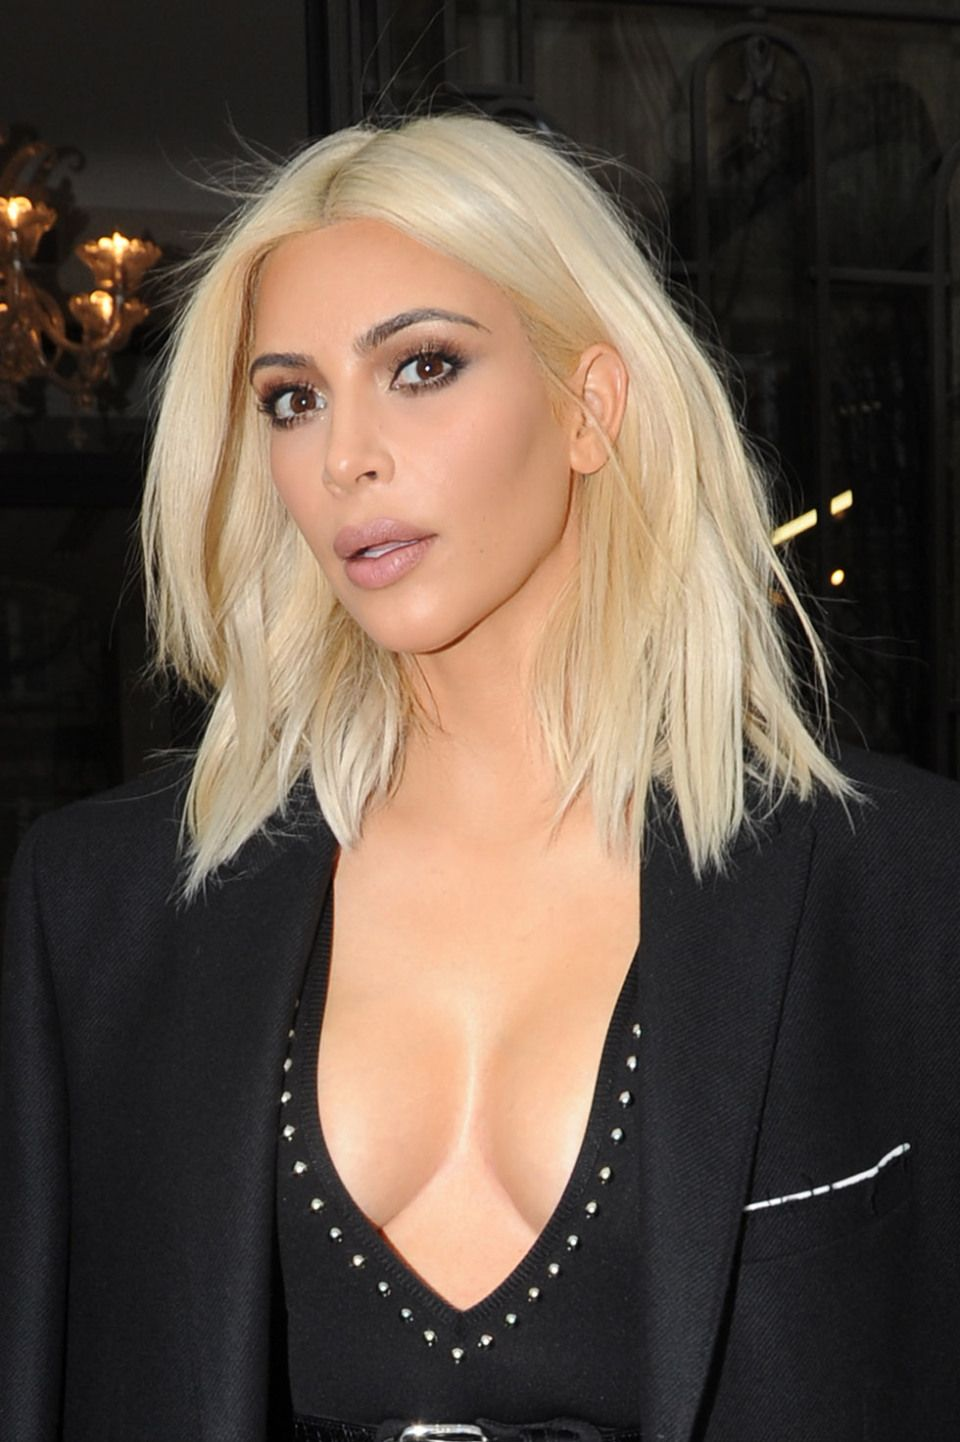 Kim Kardashian Reveals The Surprising Reason She Dyed Her Hair Blonde Deets On And